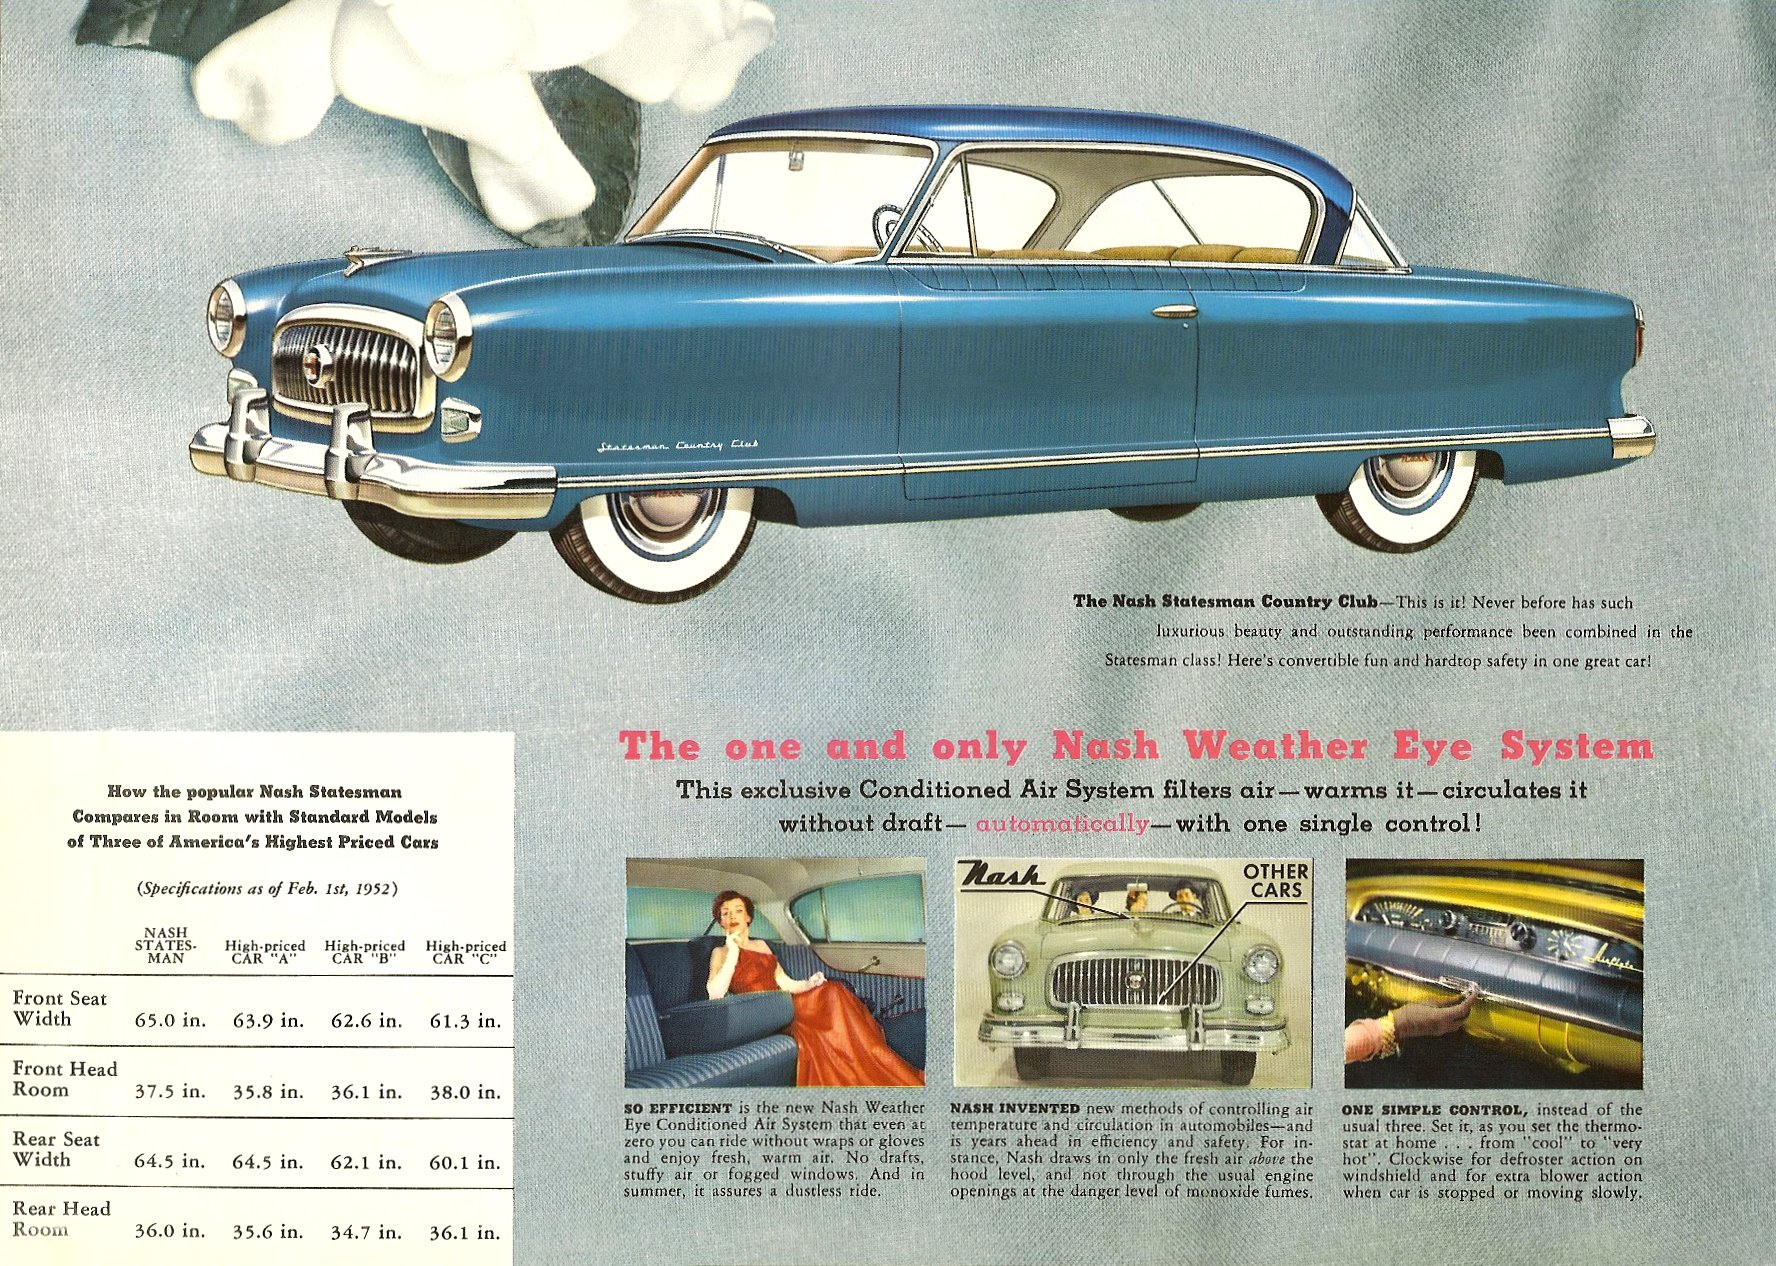 1952 The Golden Airflyte 1902-1952 Golden Anniversary By NASH Sales Catalog NSP-52-950-250M-3-52 Page 14, 12″x9″